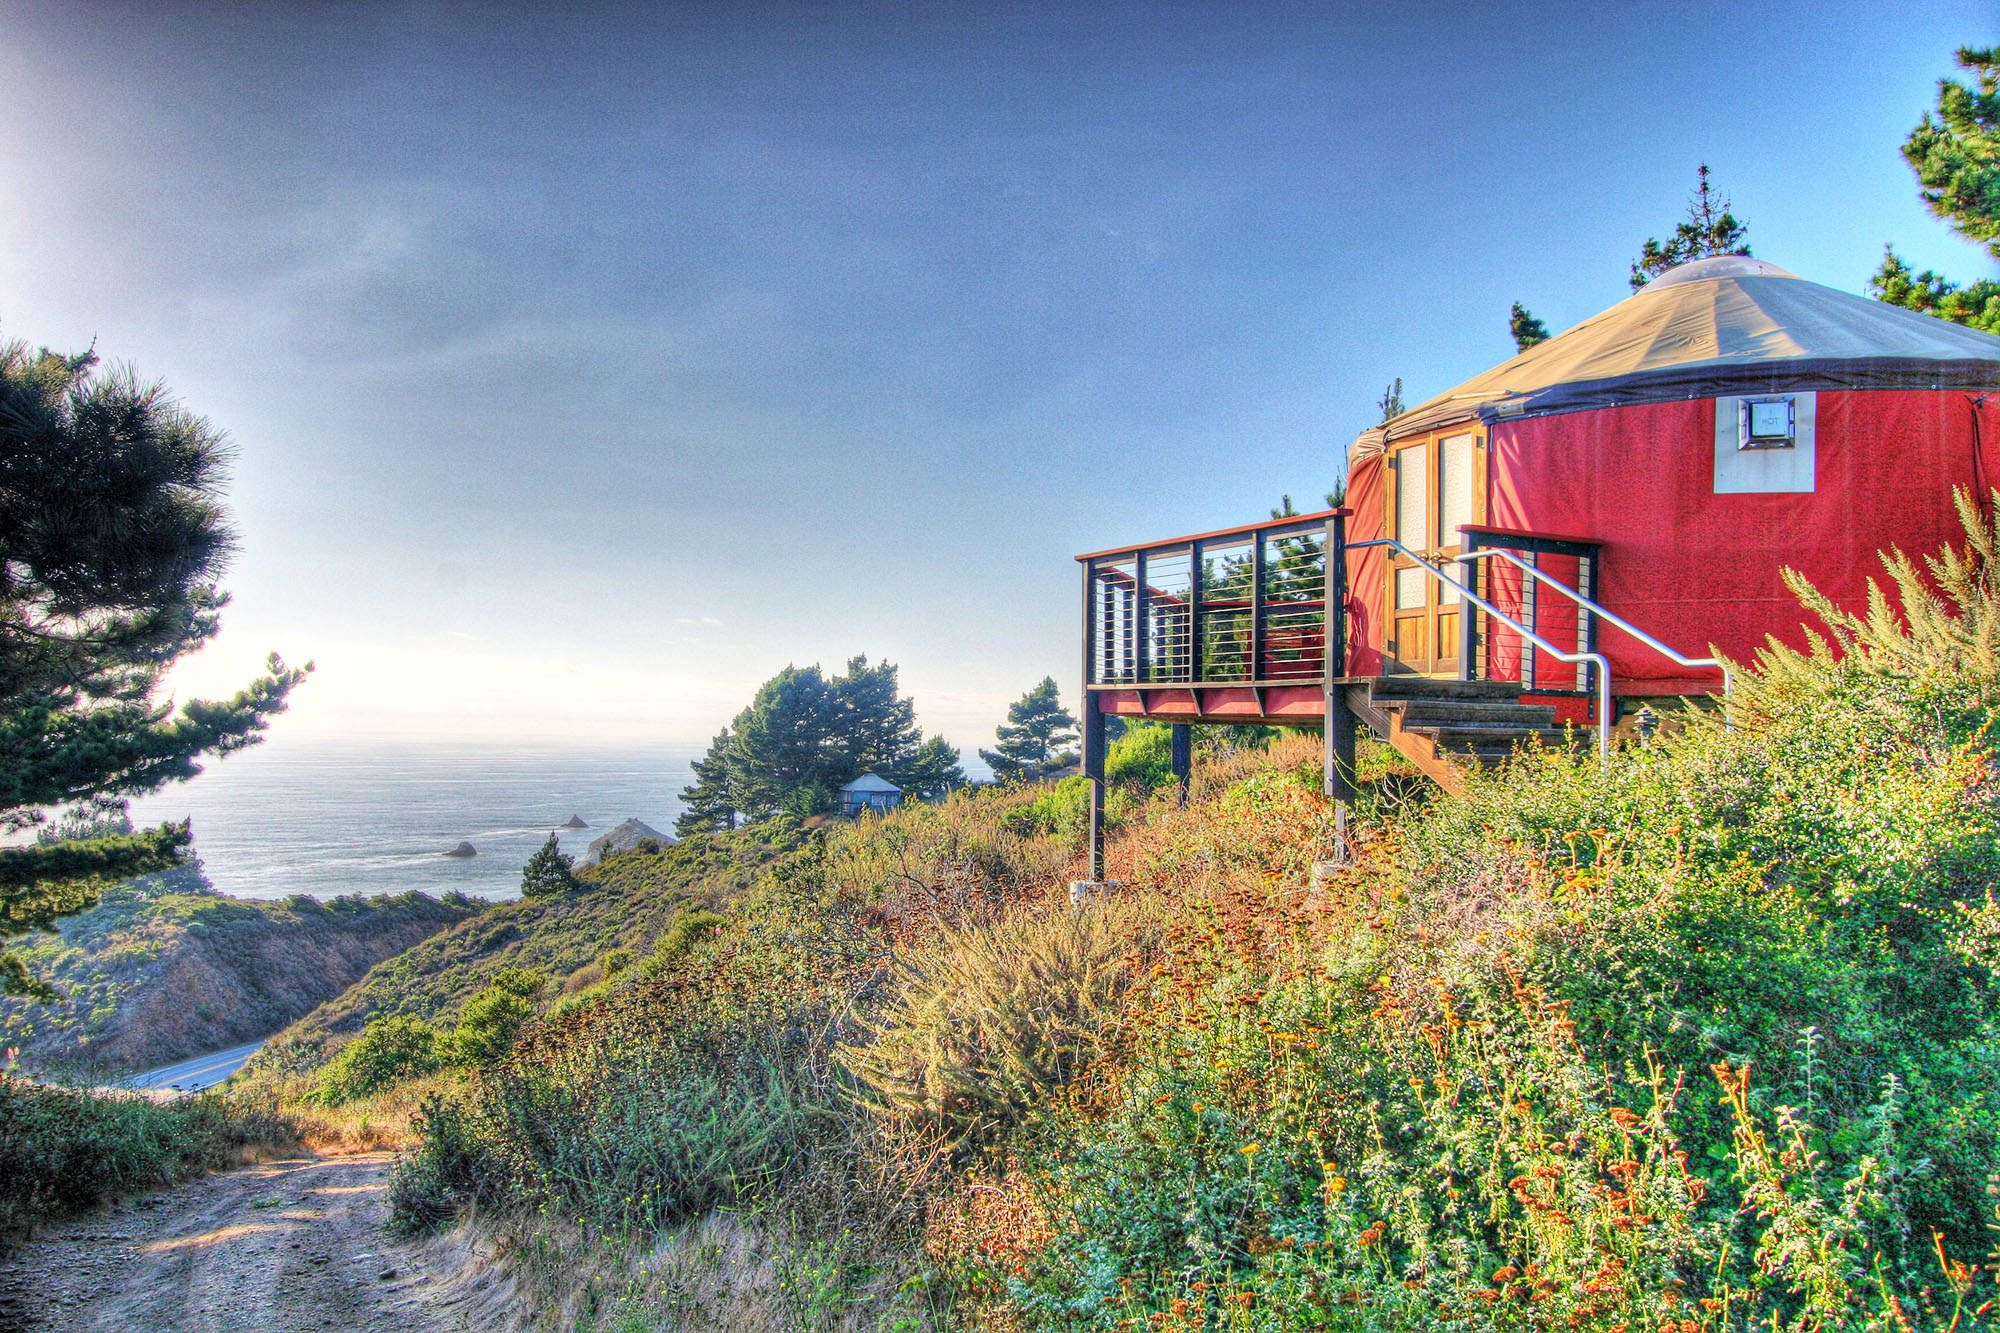 the 10 best hotels on the pacific coast highway | the next adventure